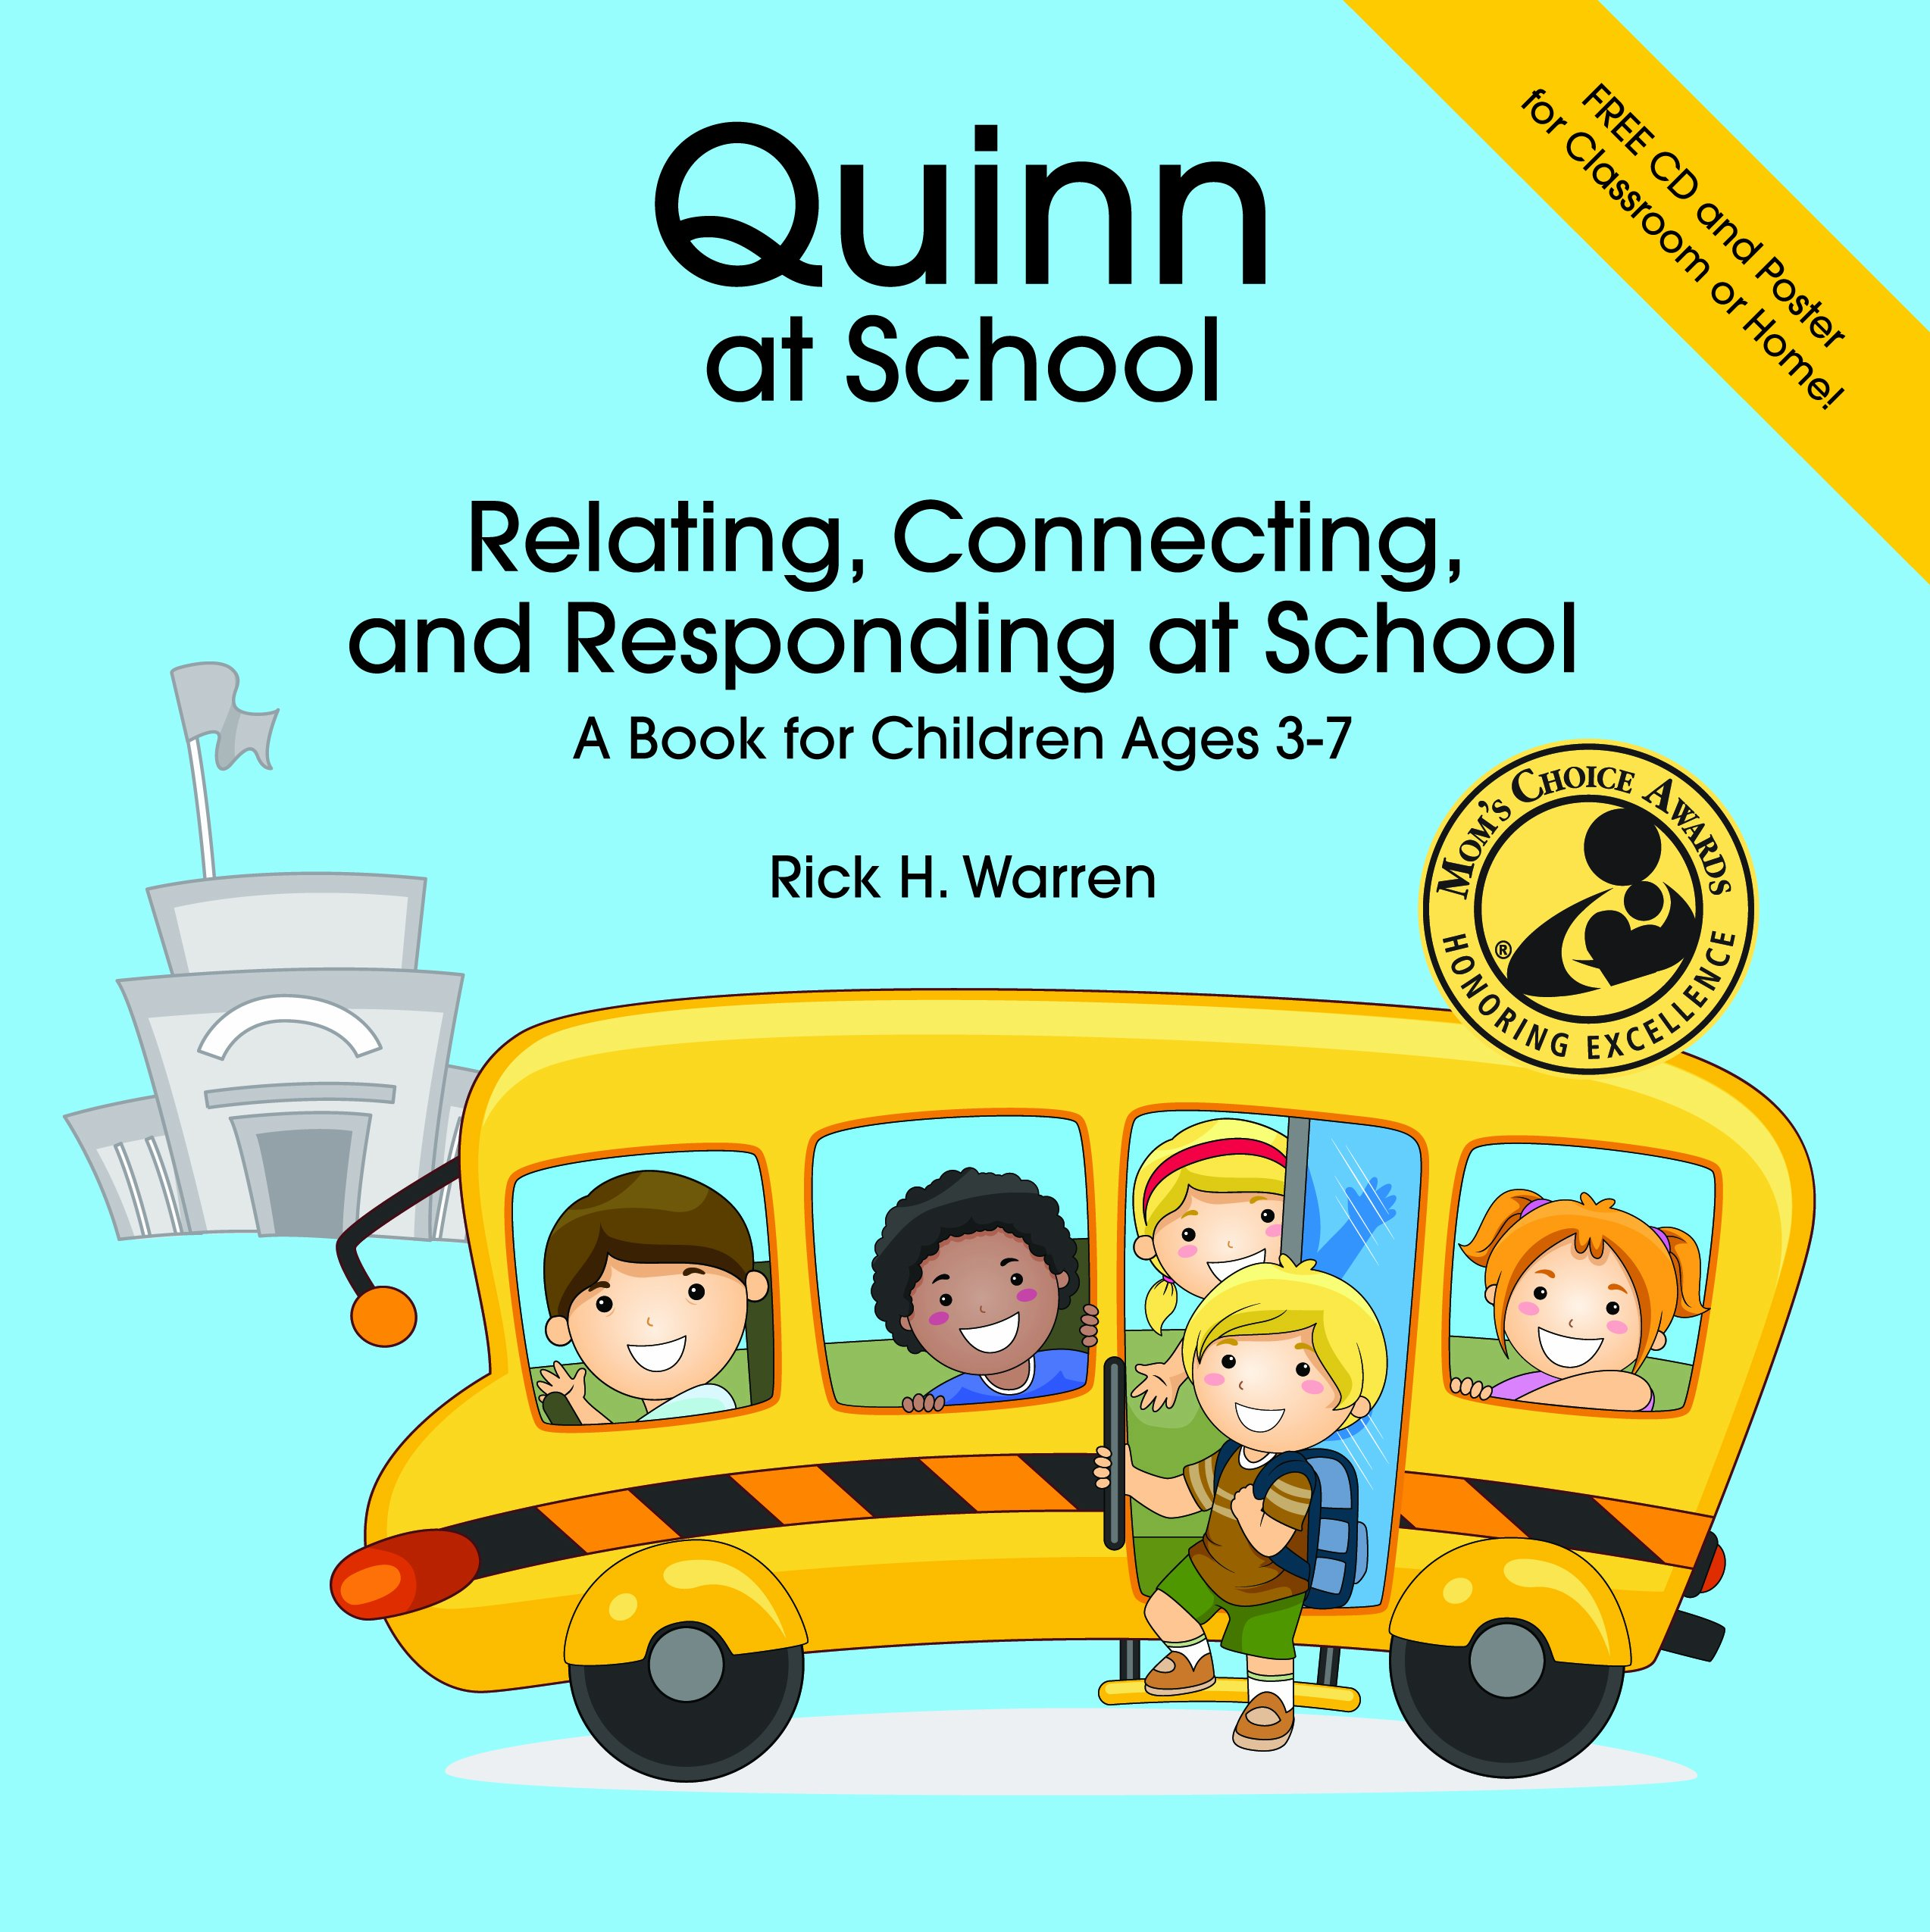 Quinn at School: Relating, Connecting and Responding - A Book for Children Ages 3-7 pdf epub